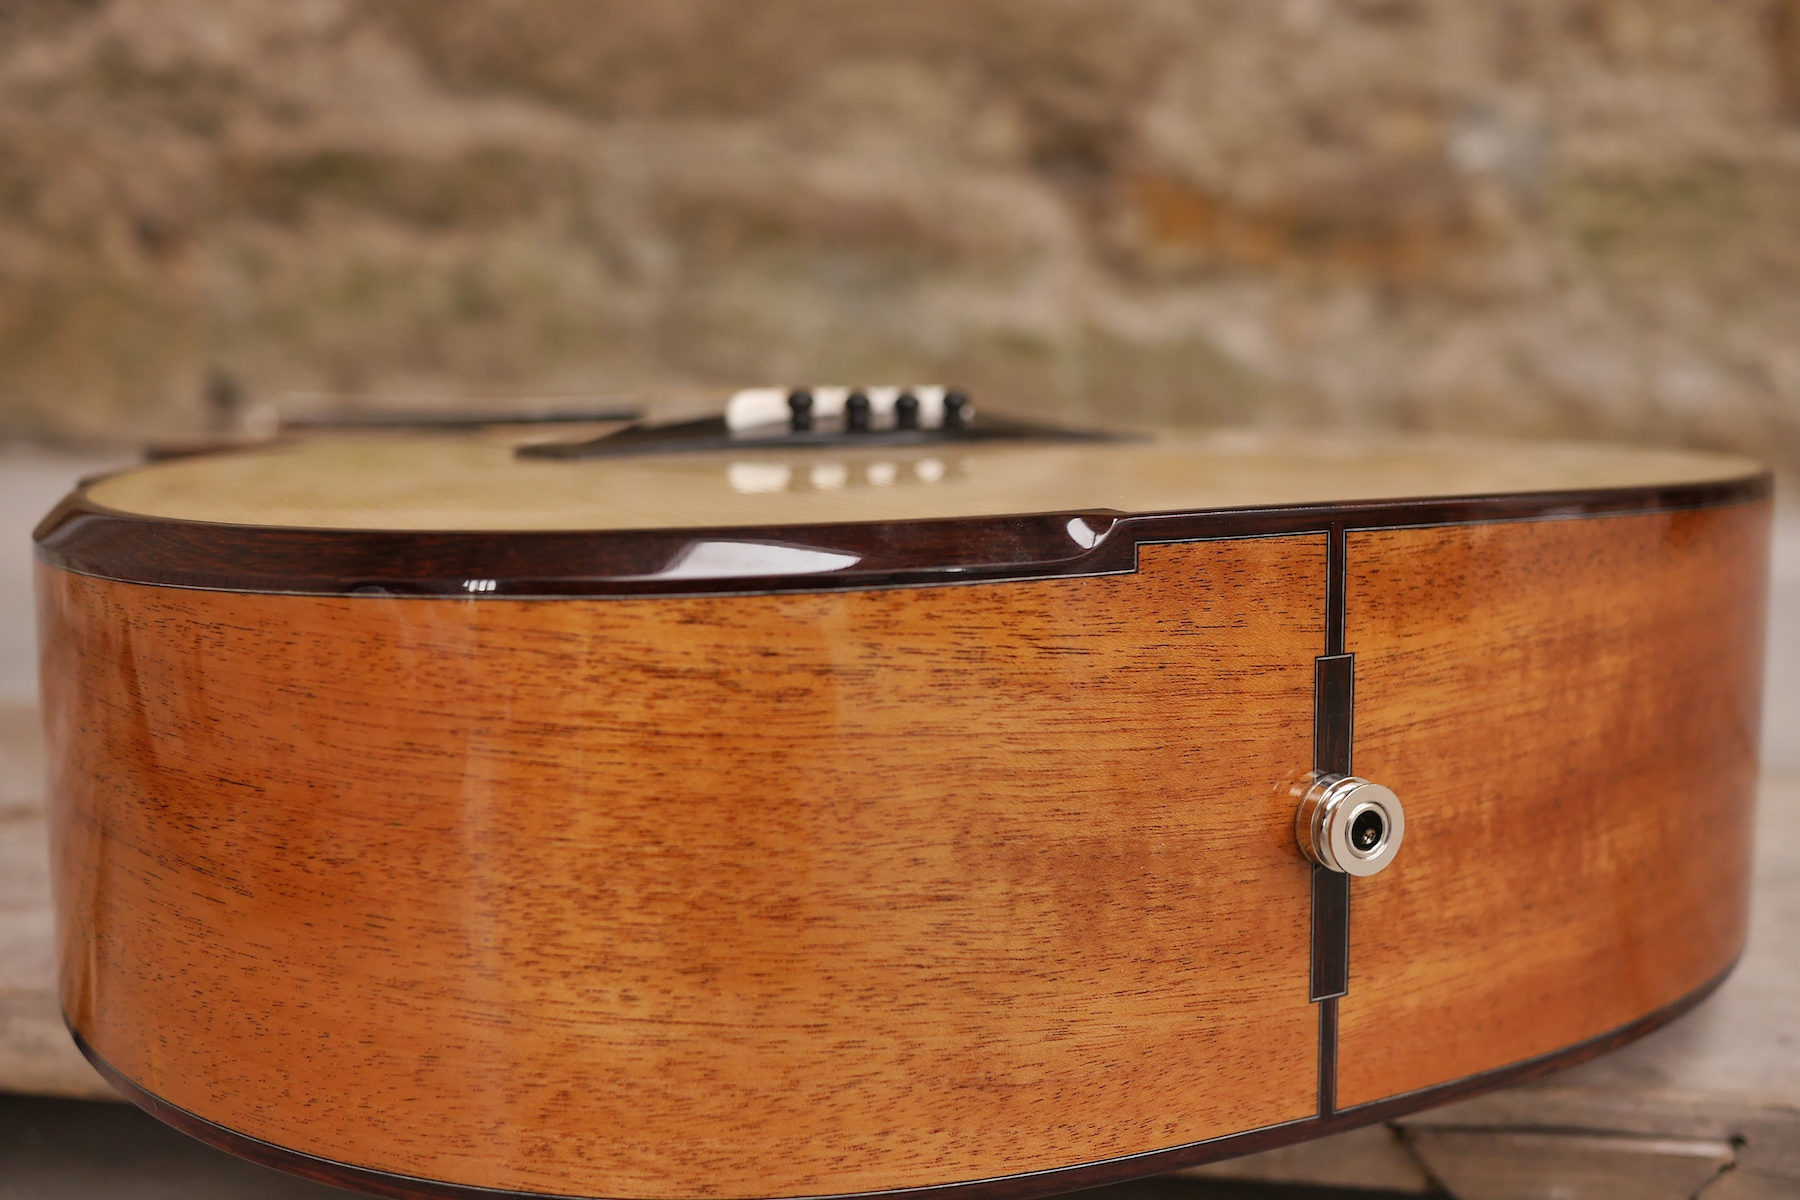 Micro Bevel in Madagascan Rosewood